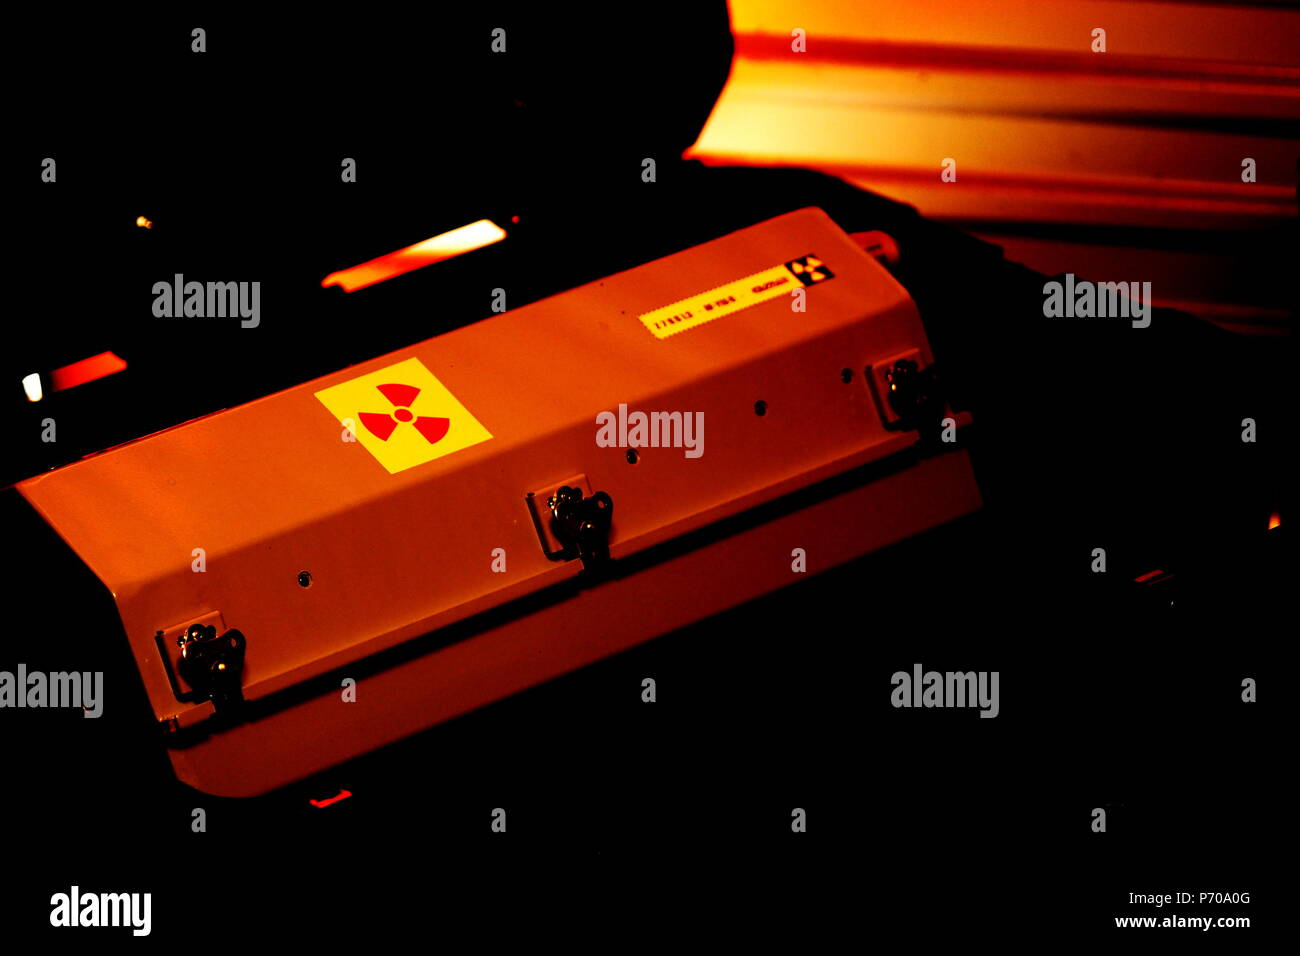 Box shaped metal container with radiation warning in a military grade transport box under red light - Stock Image